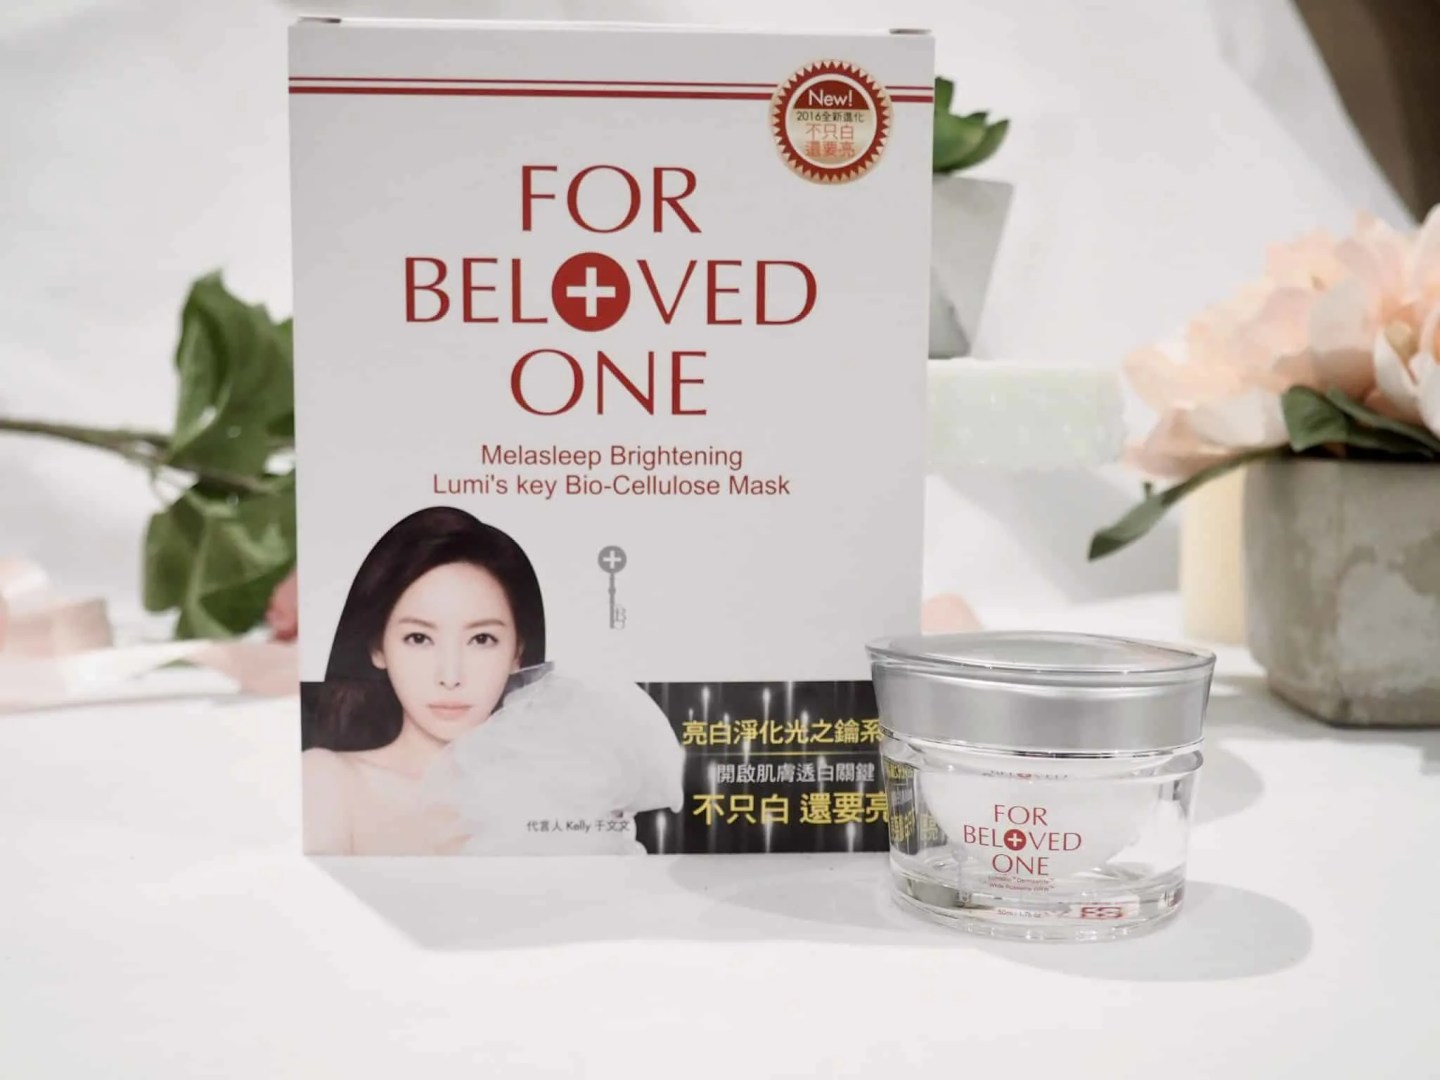 Brighter, Fresh Skin In the Morning With For Beloved One